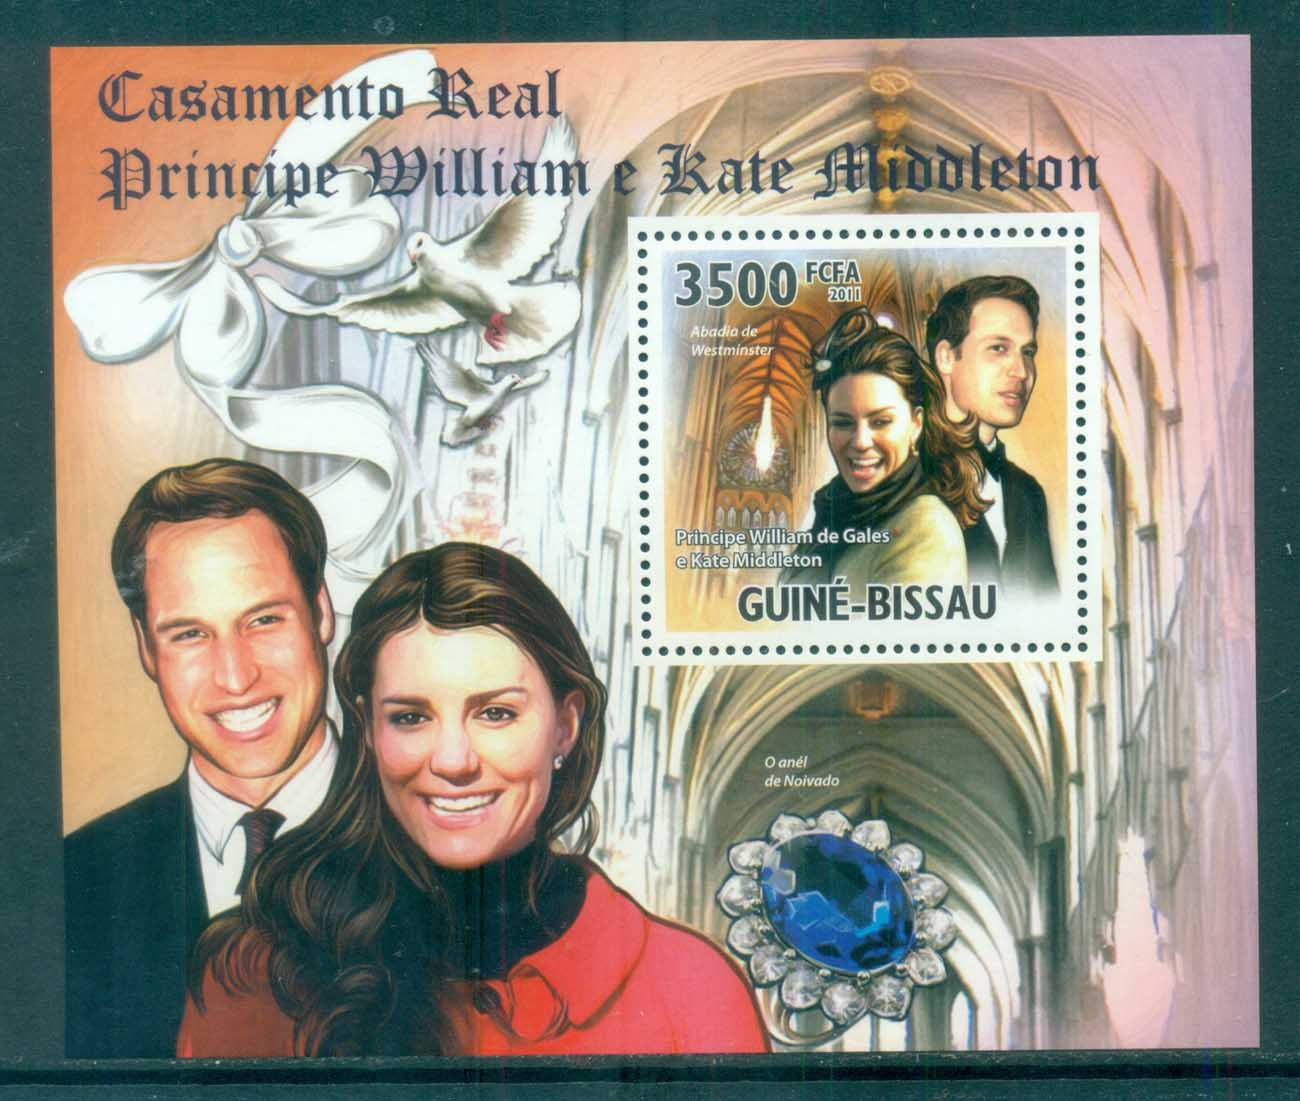 Guinea Bissau 2011 Famous People, Royalty, William & Kate MS MUH GB11304c